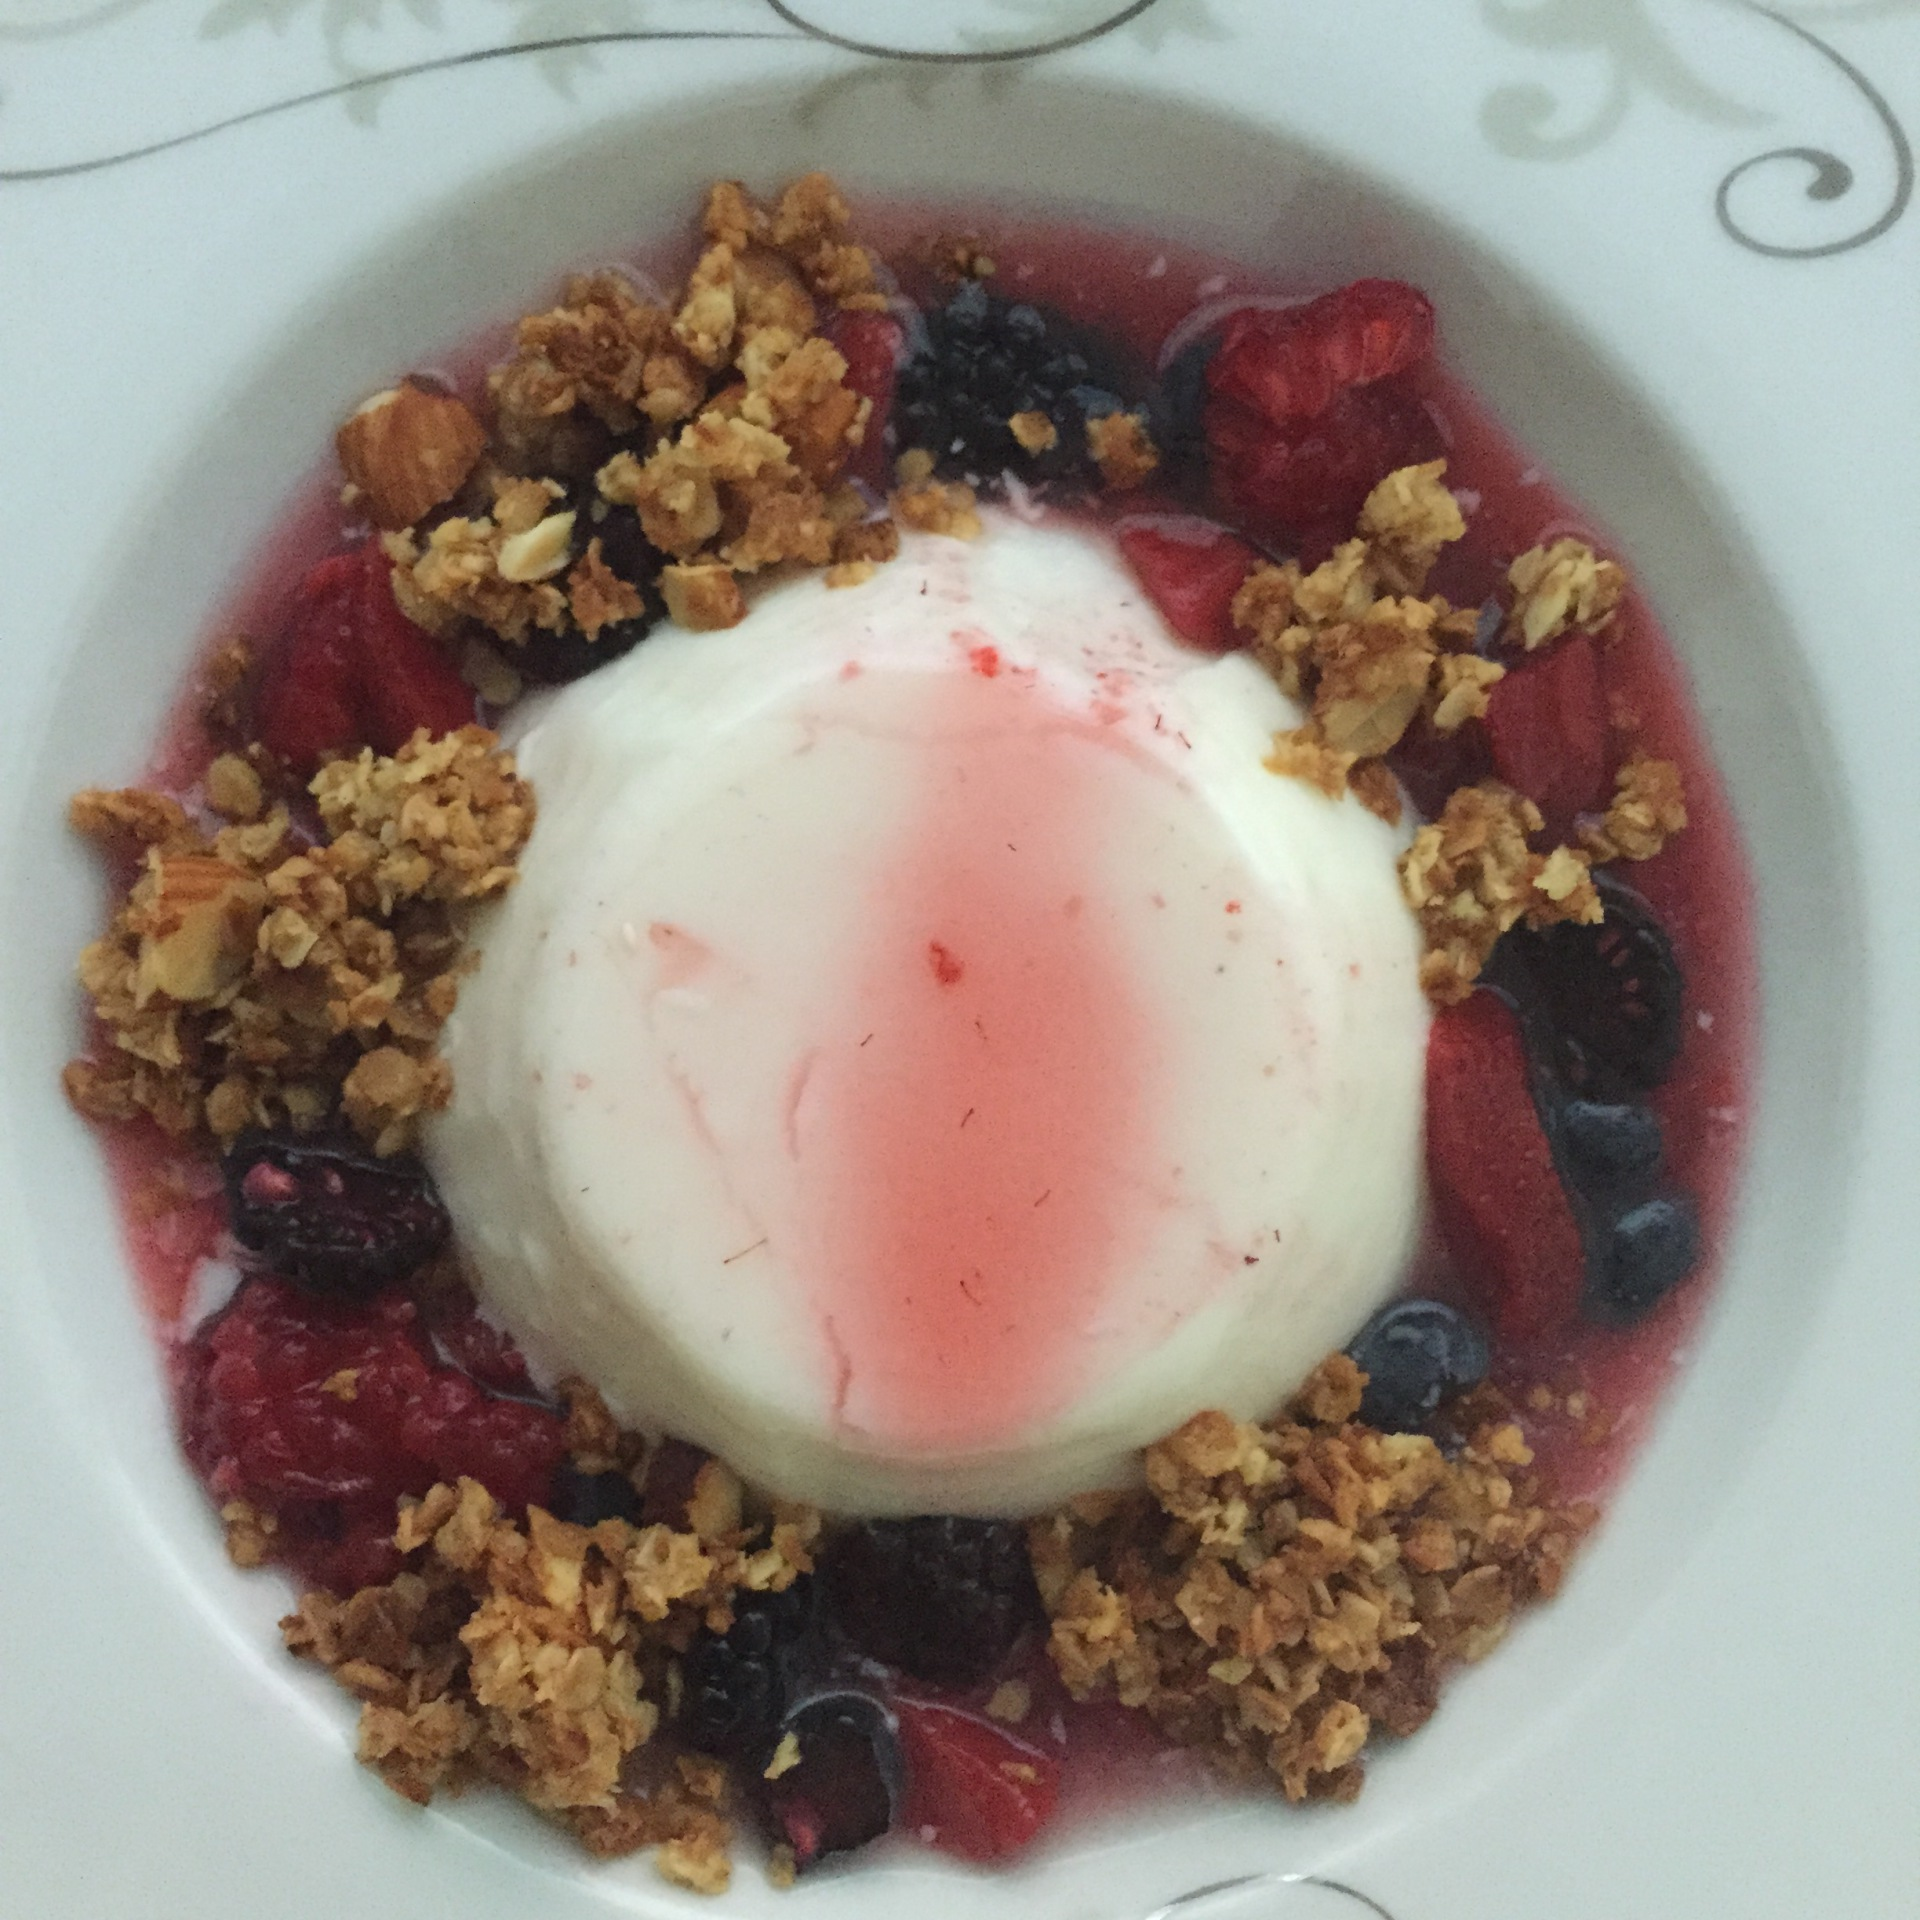 Junket, oat granola, macerated berries.